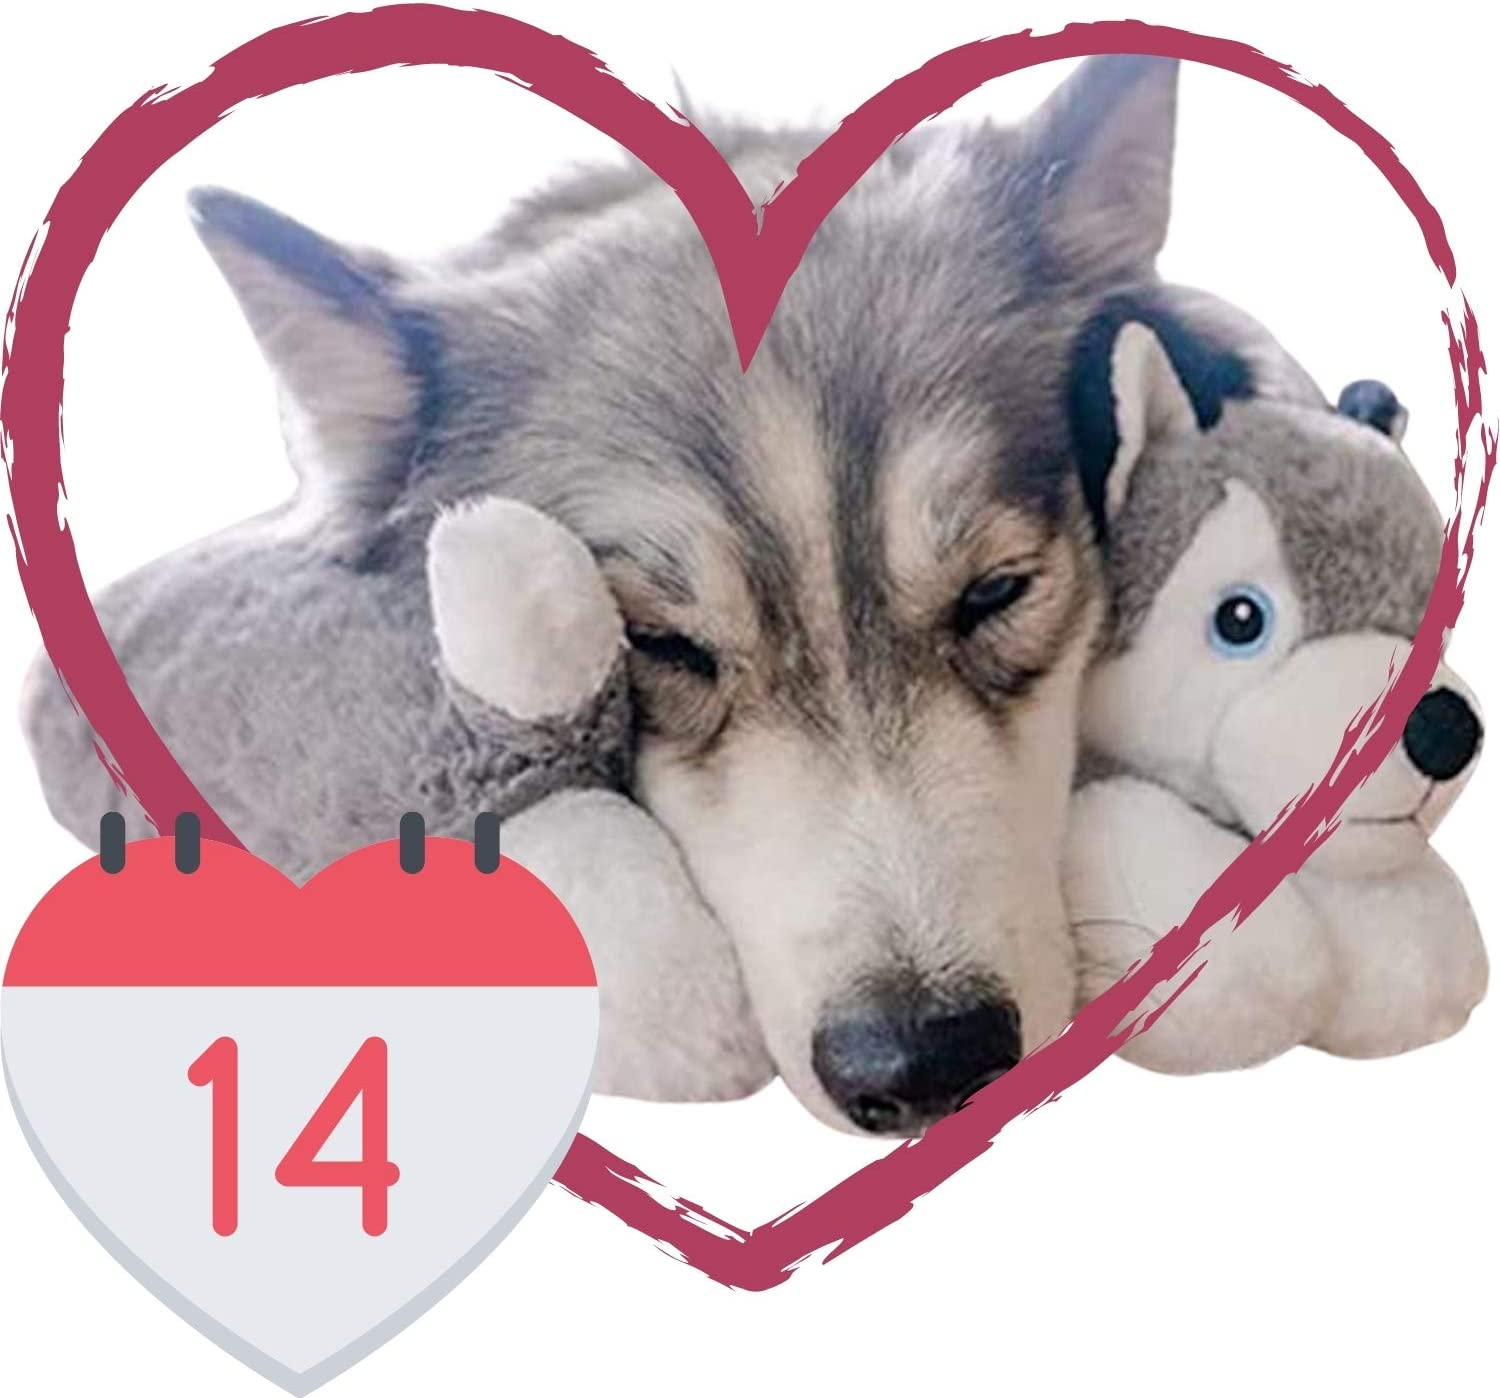 The Dog Pillow Company Plush Pet Pillow Dog Neck Pillow For Upper Spine And Calming Support Large Husky 14 X 14 X 6 Inches Kitchen Dining